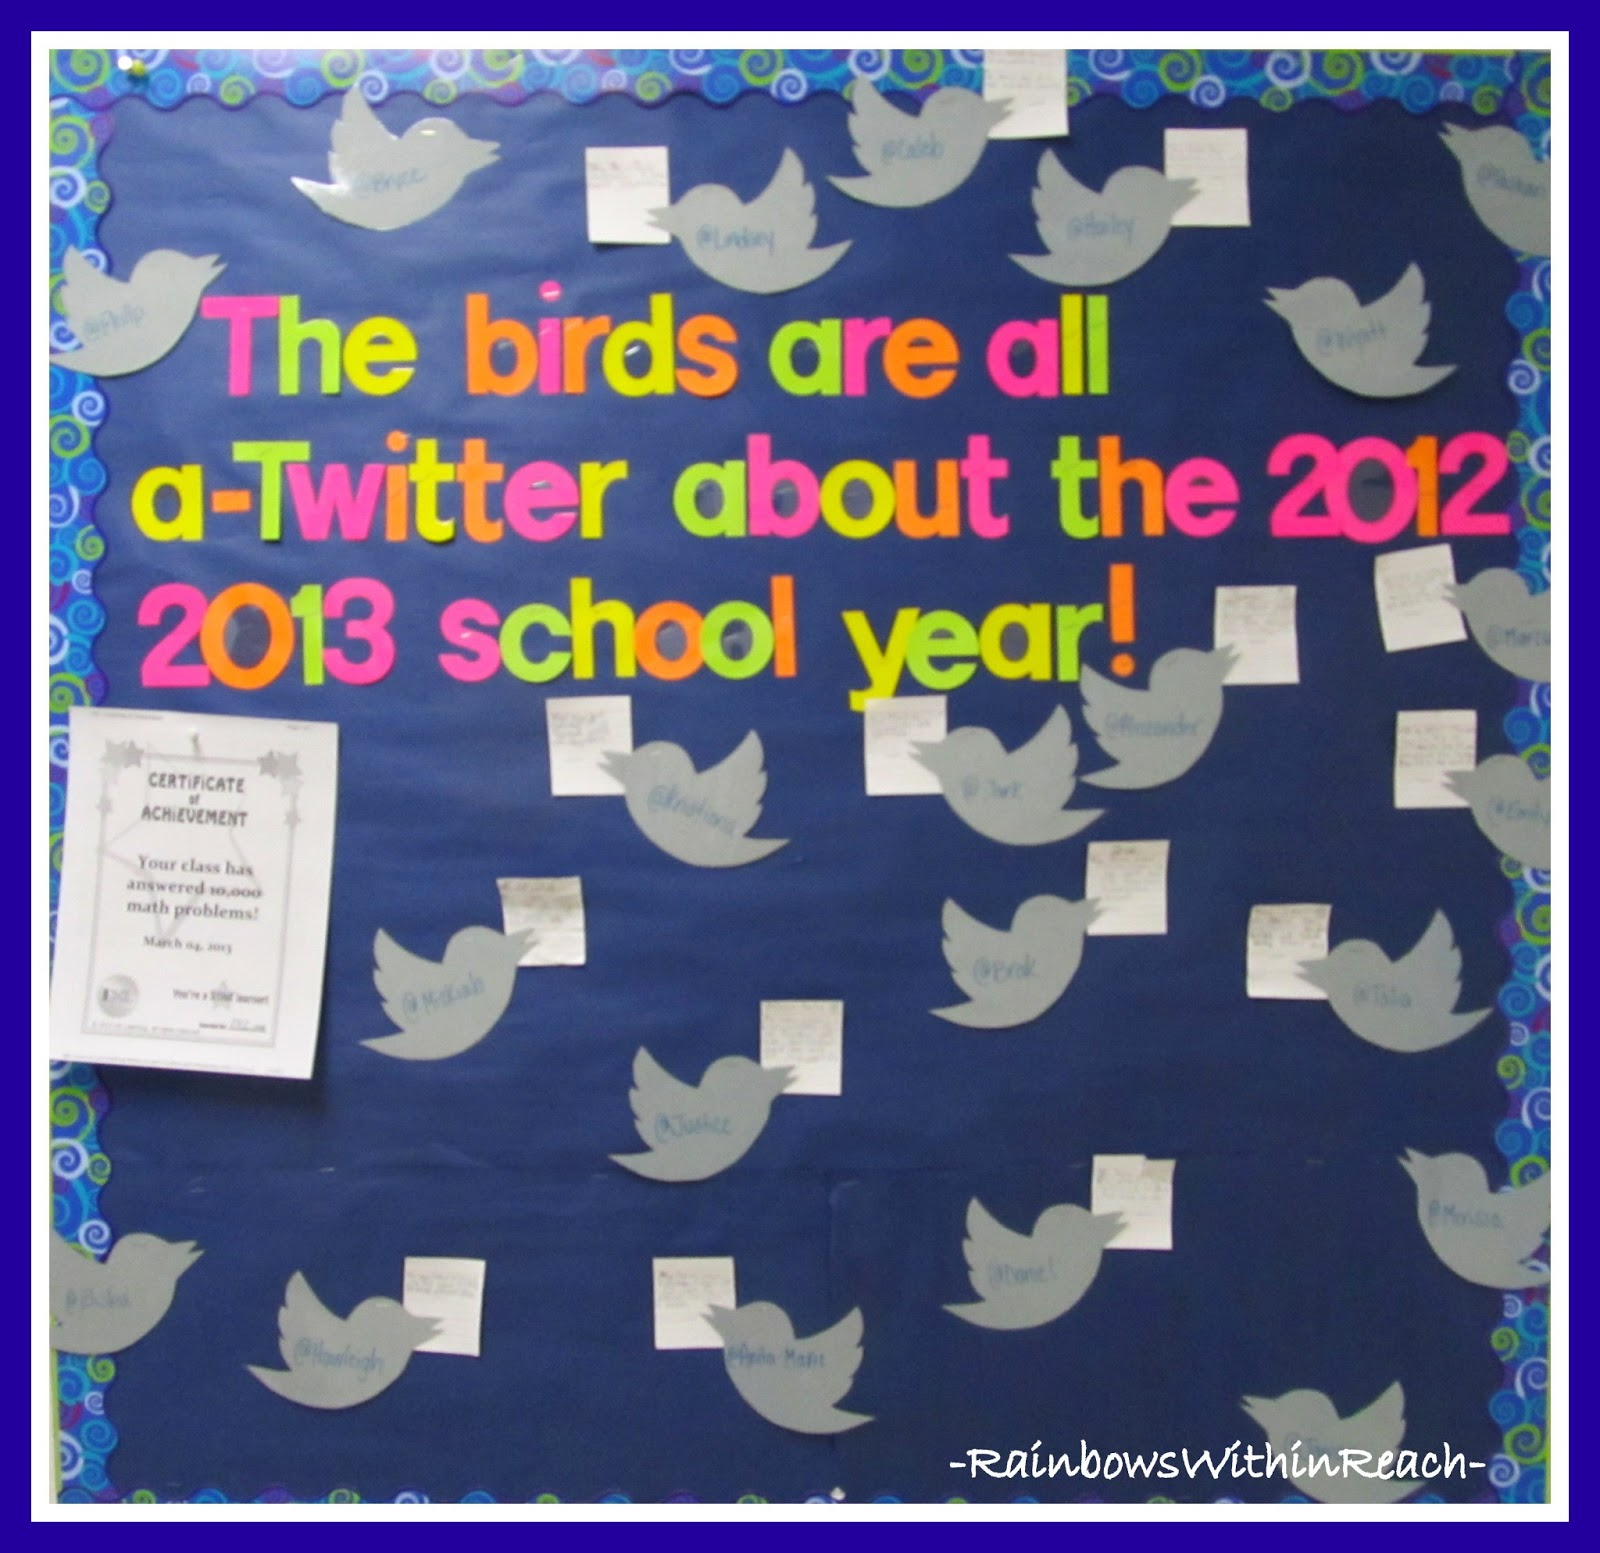 Screen shot of a bulletin board that's been decorated with cut-outs of birds and text that says 'The birds are all a-Twitter about the 2012-2013 school year' in colorful cut-out letters